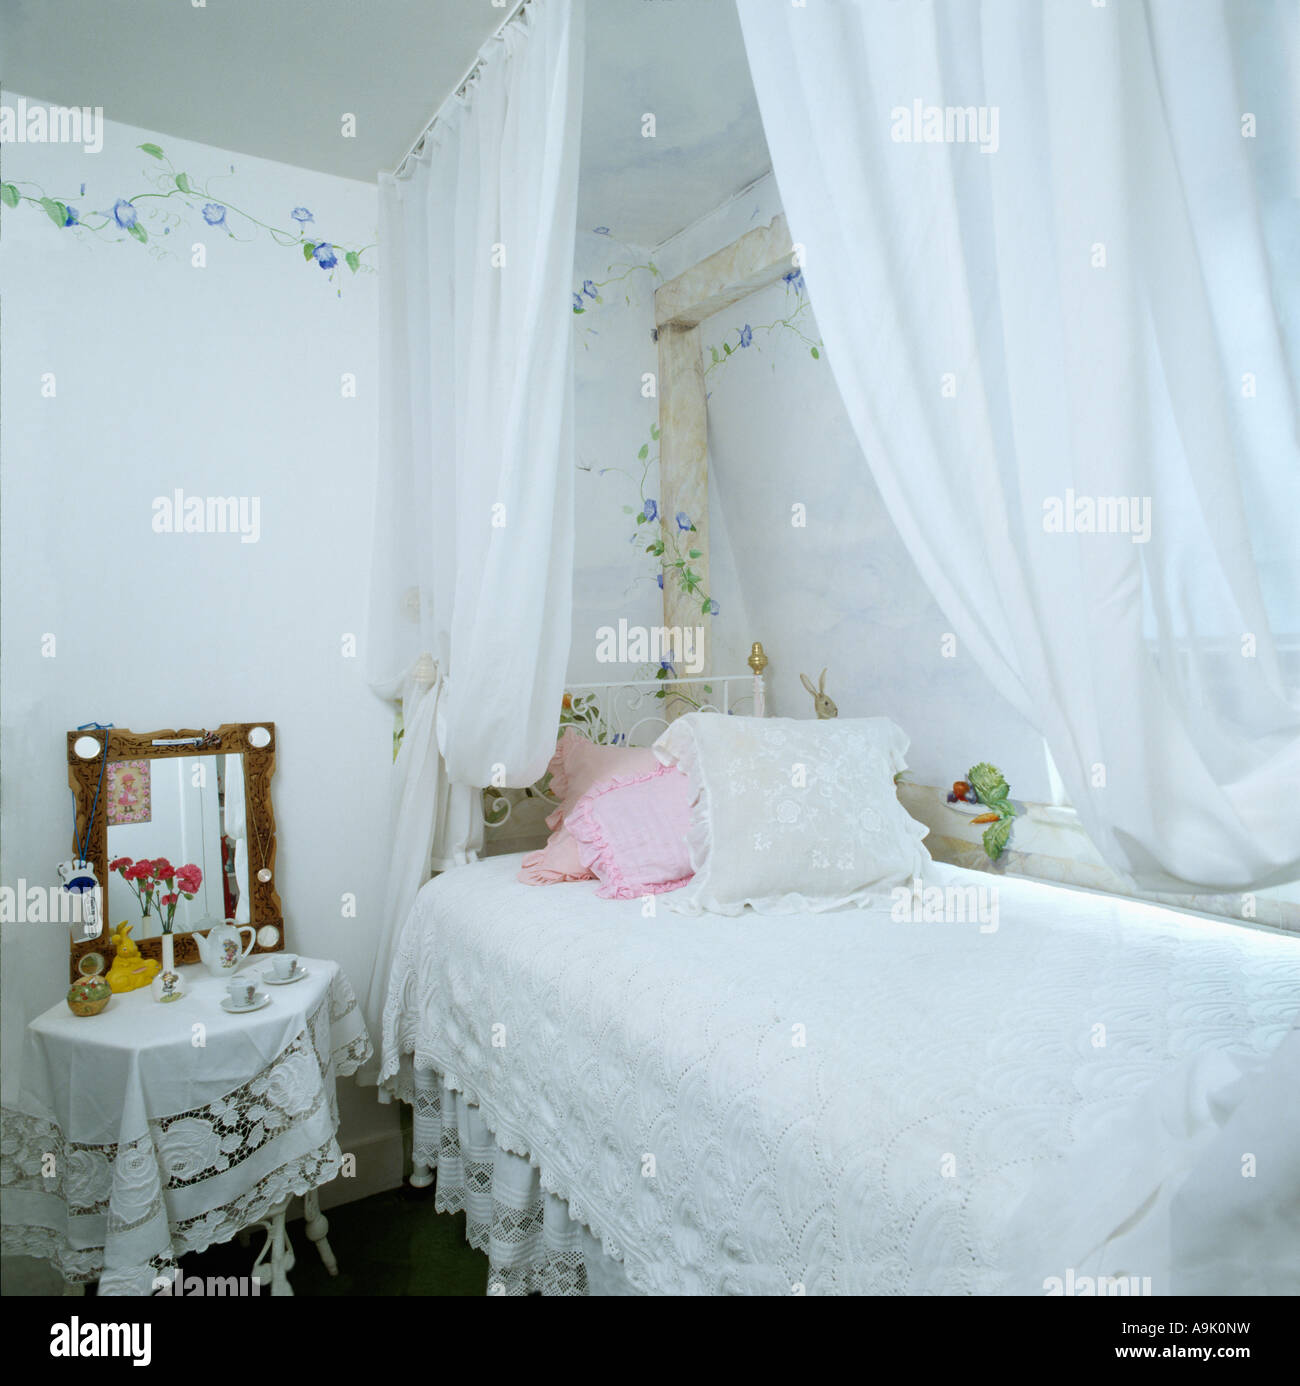 Stock Photo   White voile drapes above bed with white lace cover in small white  bedroom with stencilled blue floral border on the walls. White voile drapes above bed with white lace cover in small white